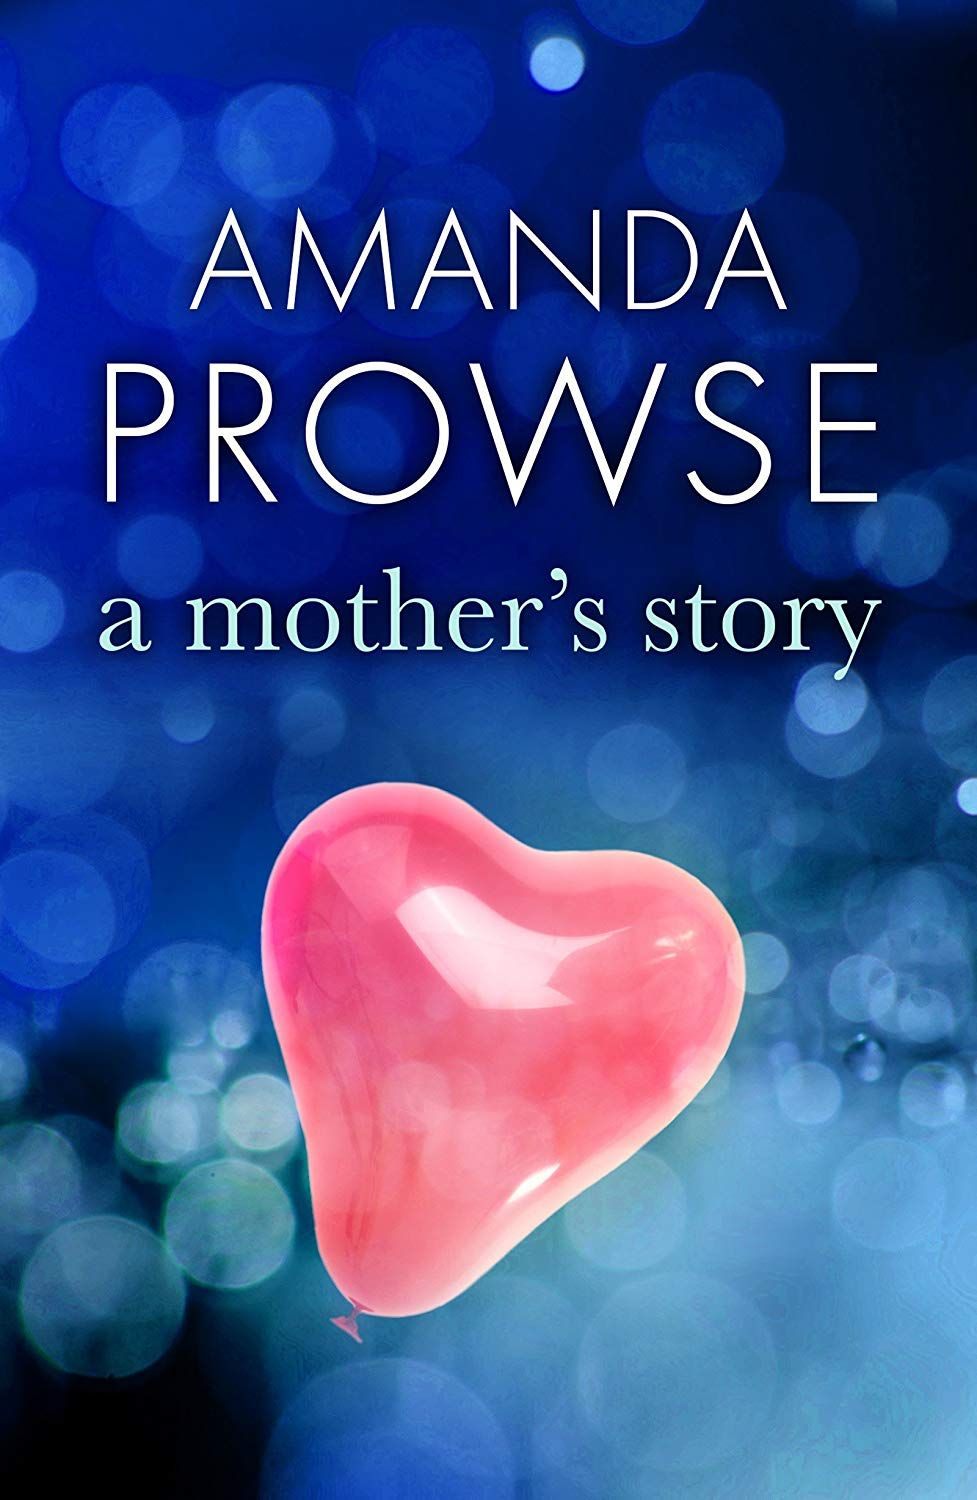 how to fall in love again amanda prowse